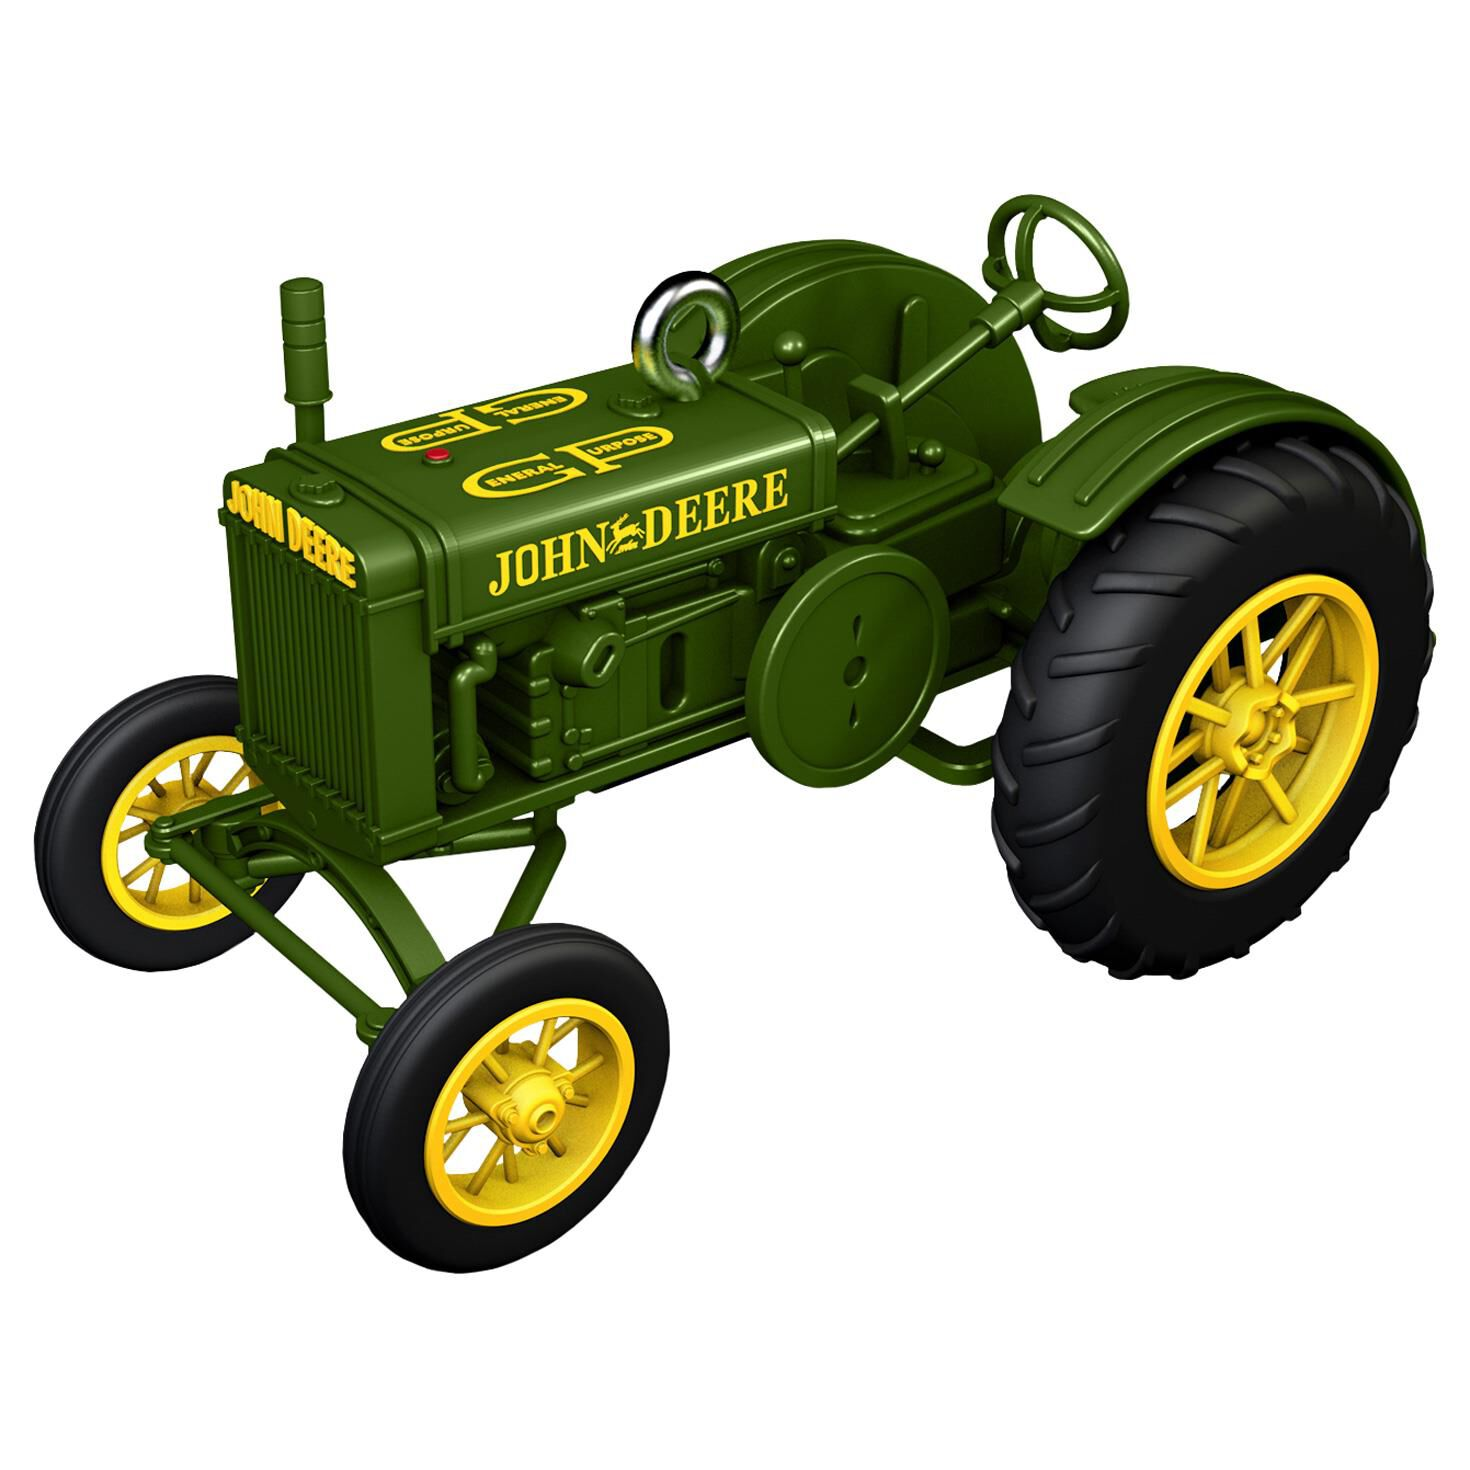 1928 John Deere Model GP Tractor Ornament